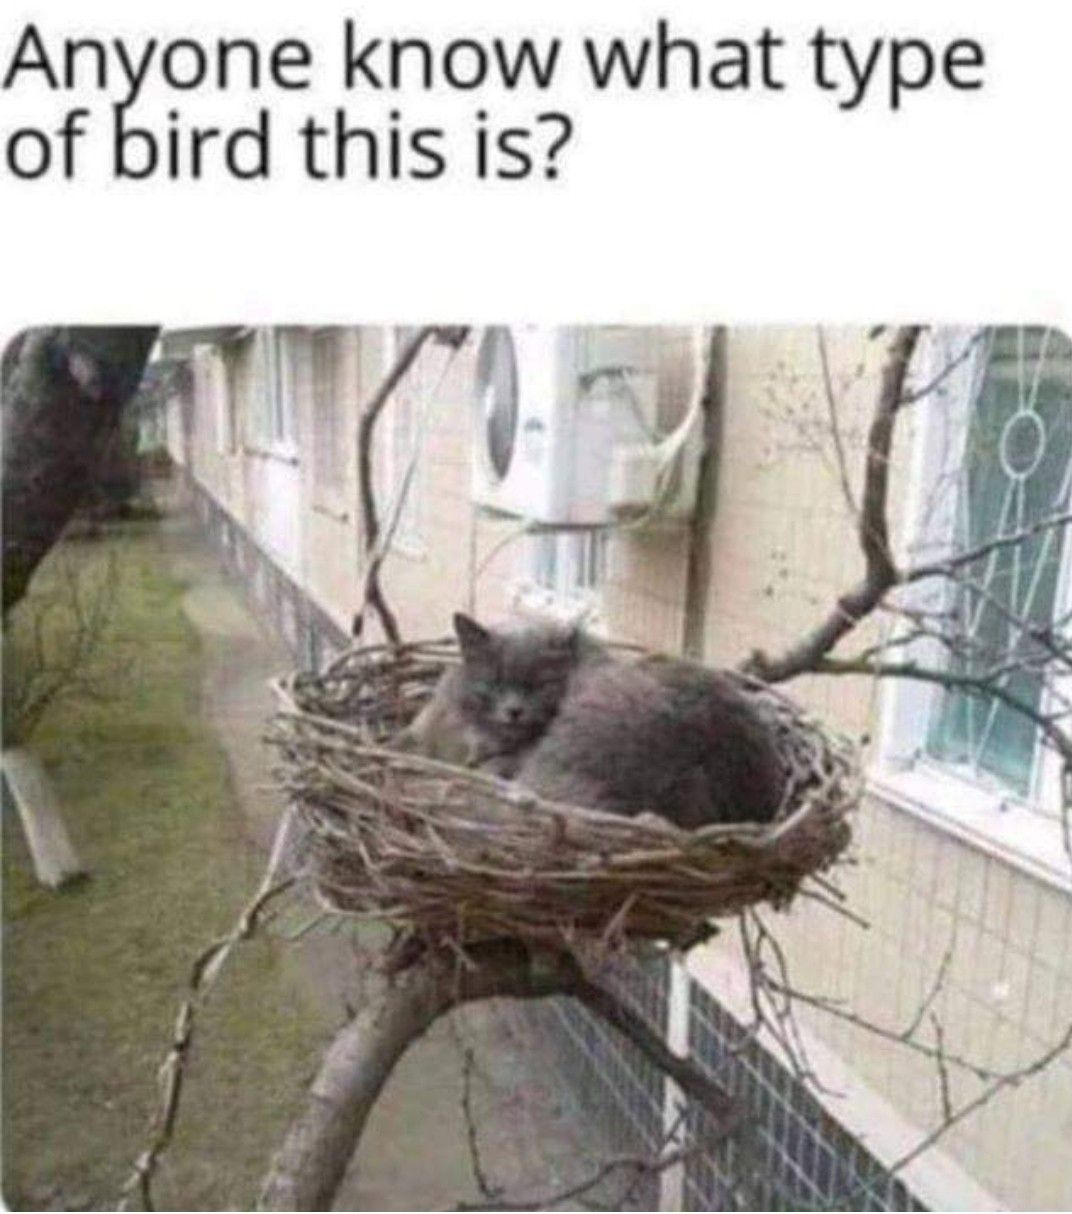 Anyone know what type of bird this is?